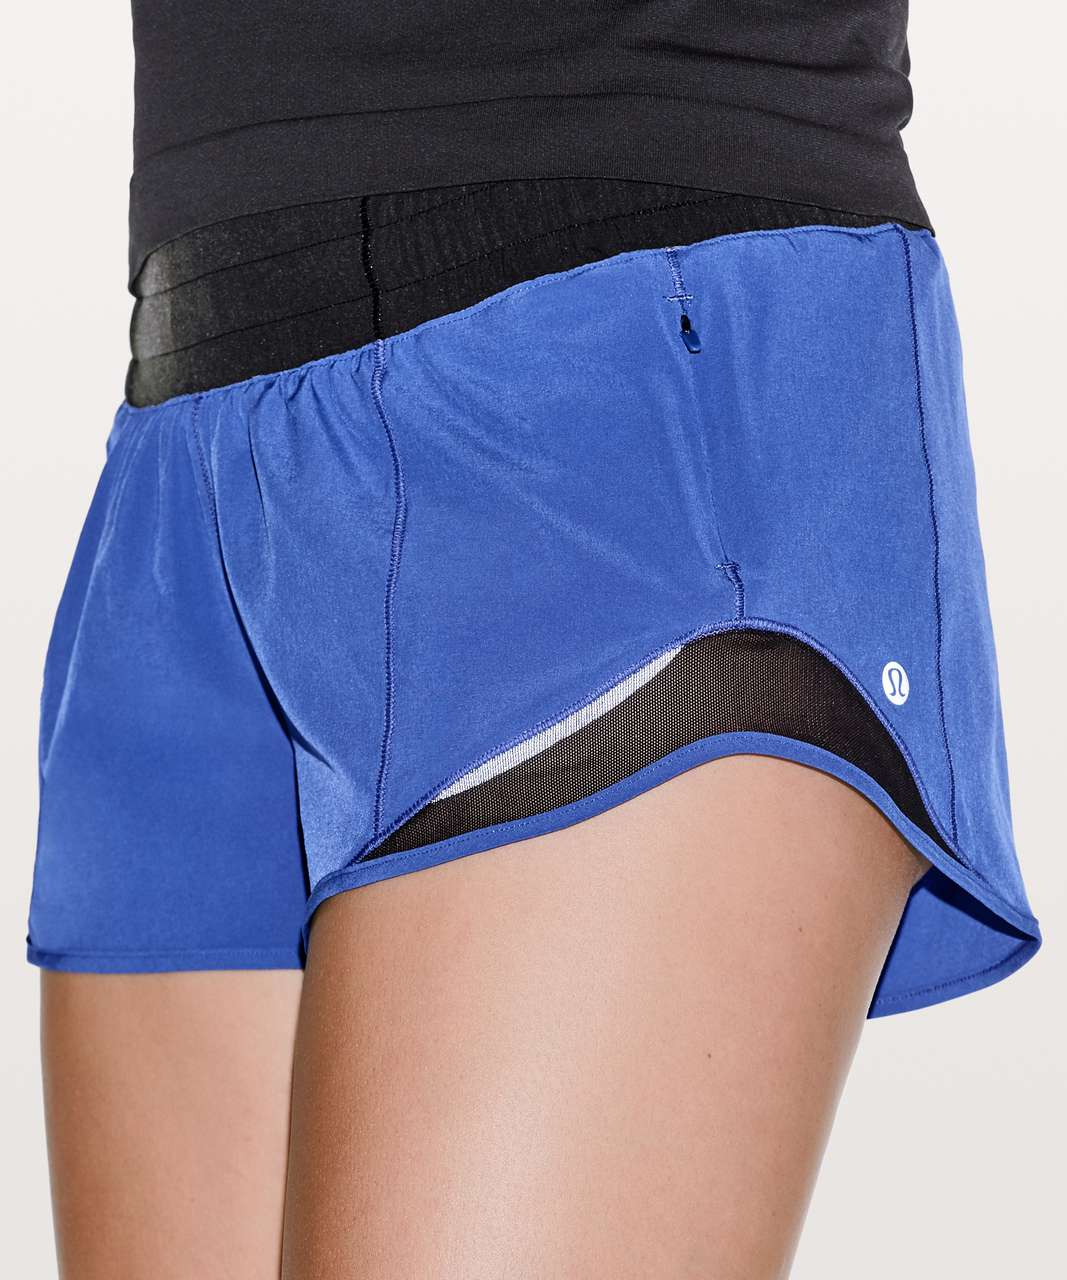 "Lululemon Hotty Hot Short II *2.5"" - Moroccan Blue / Black"